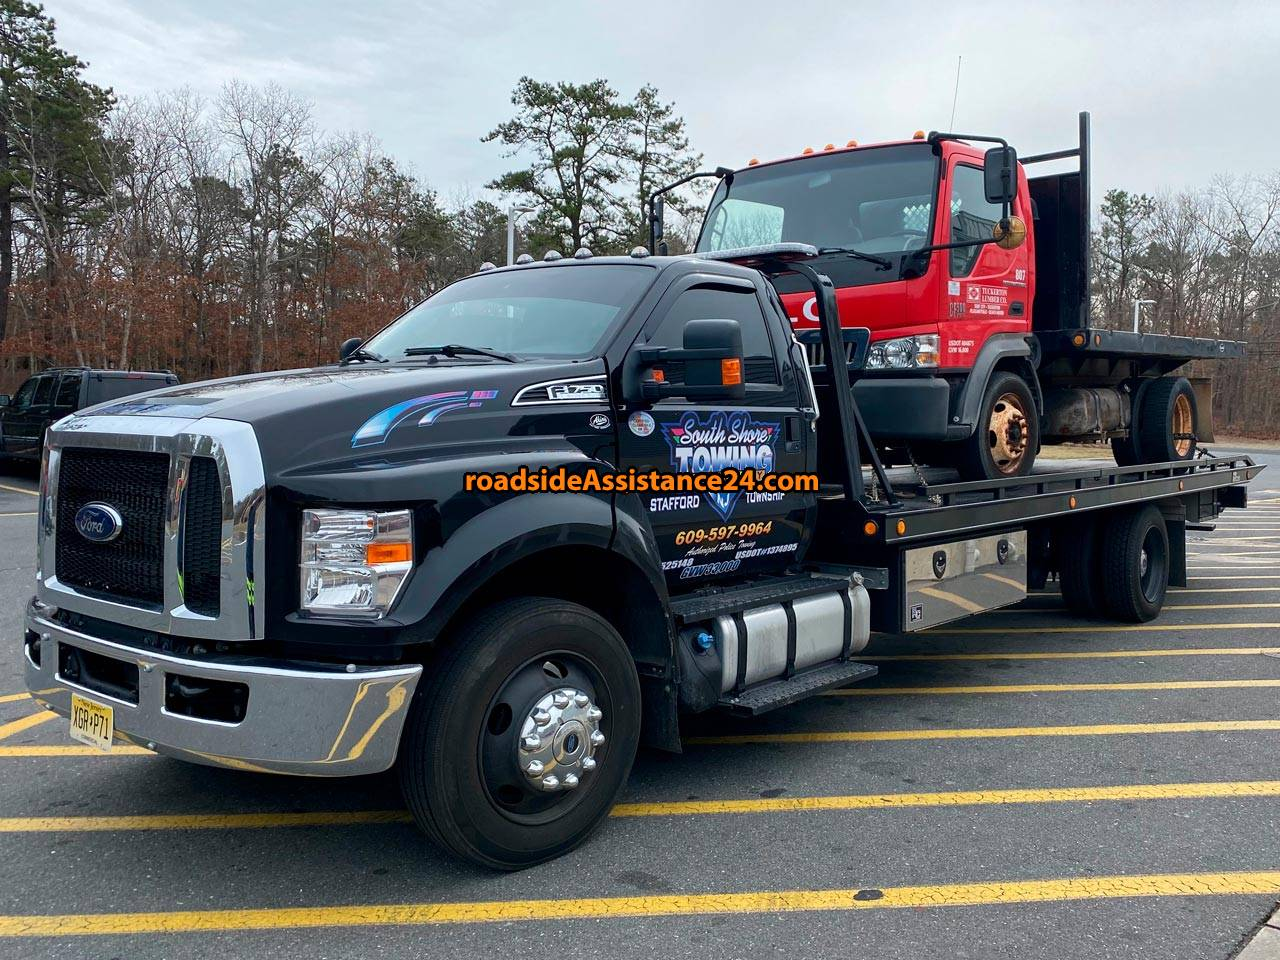 South Shore Towing & Recovery